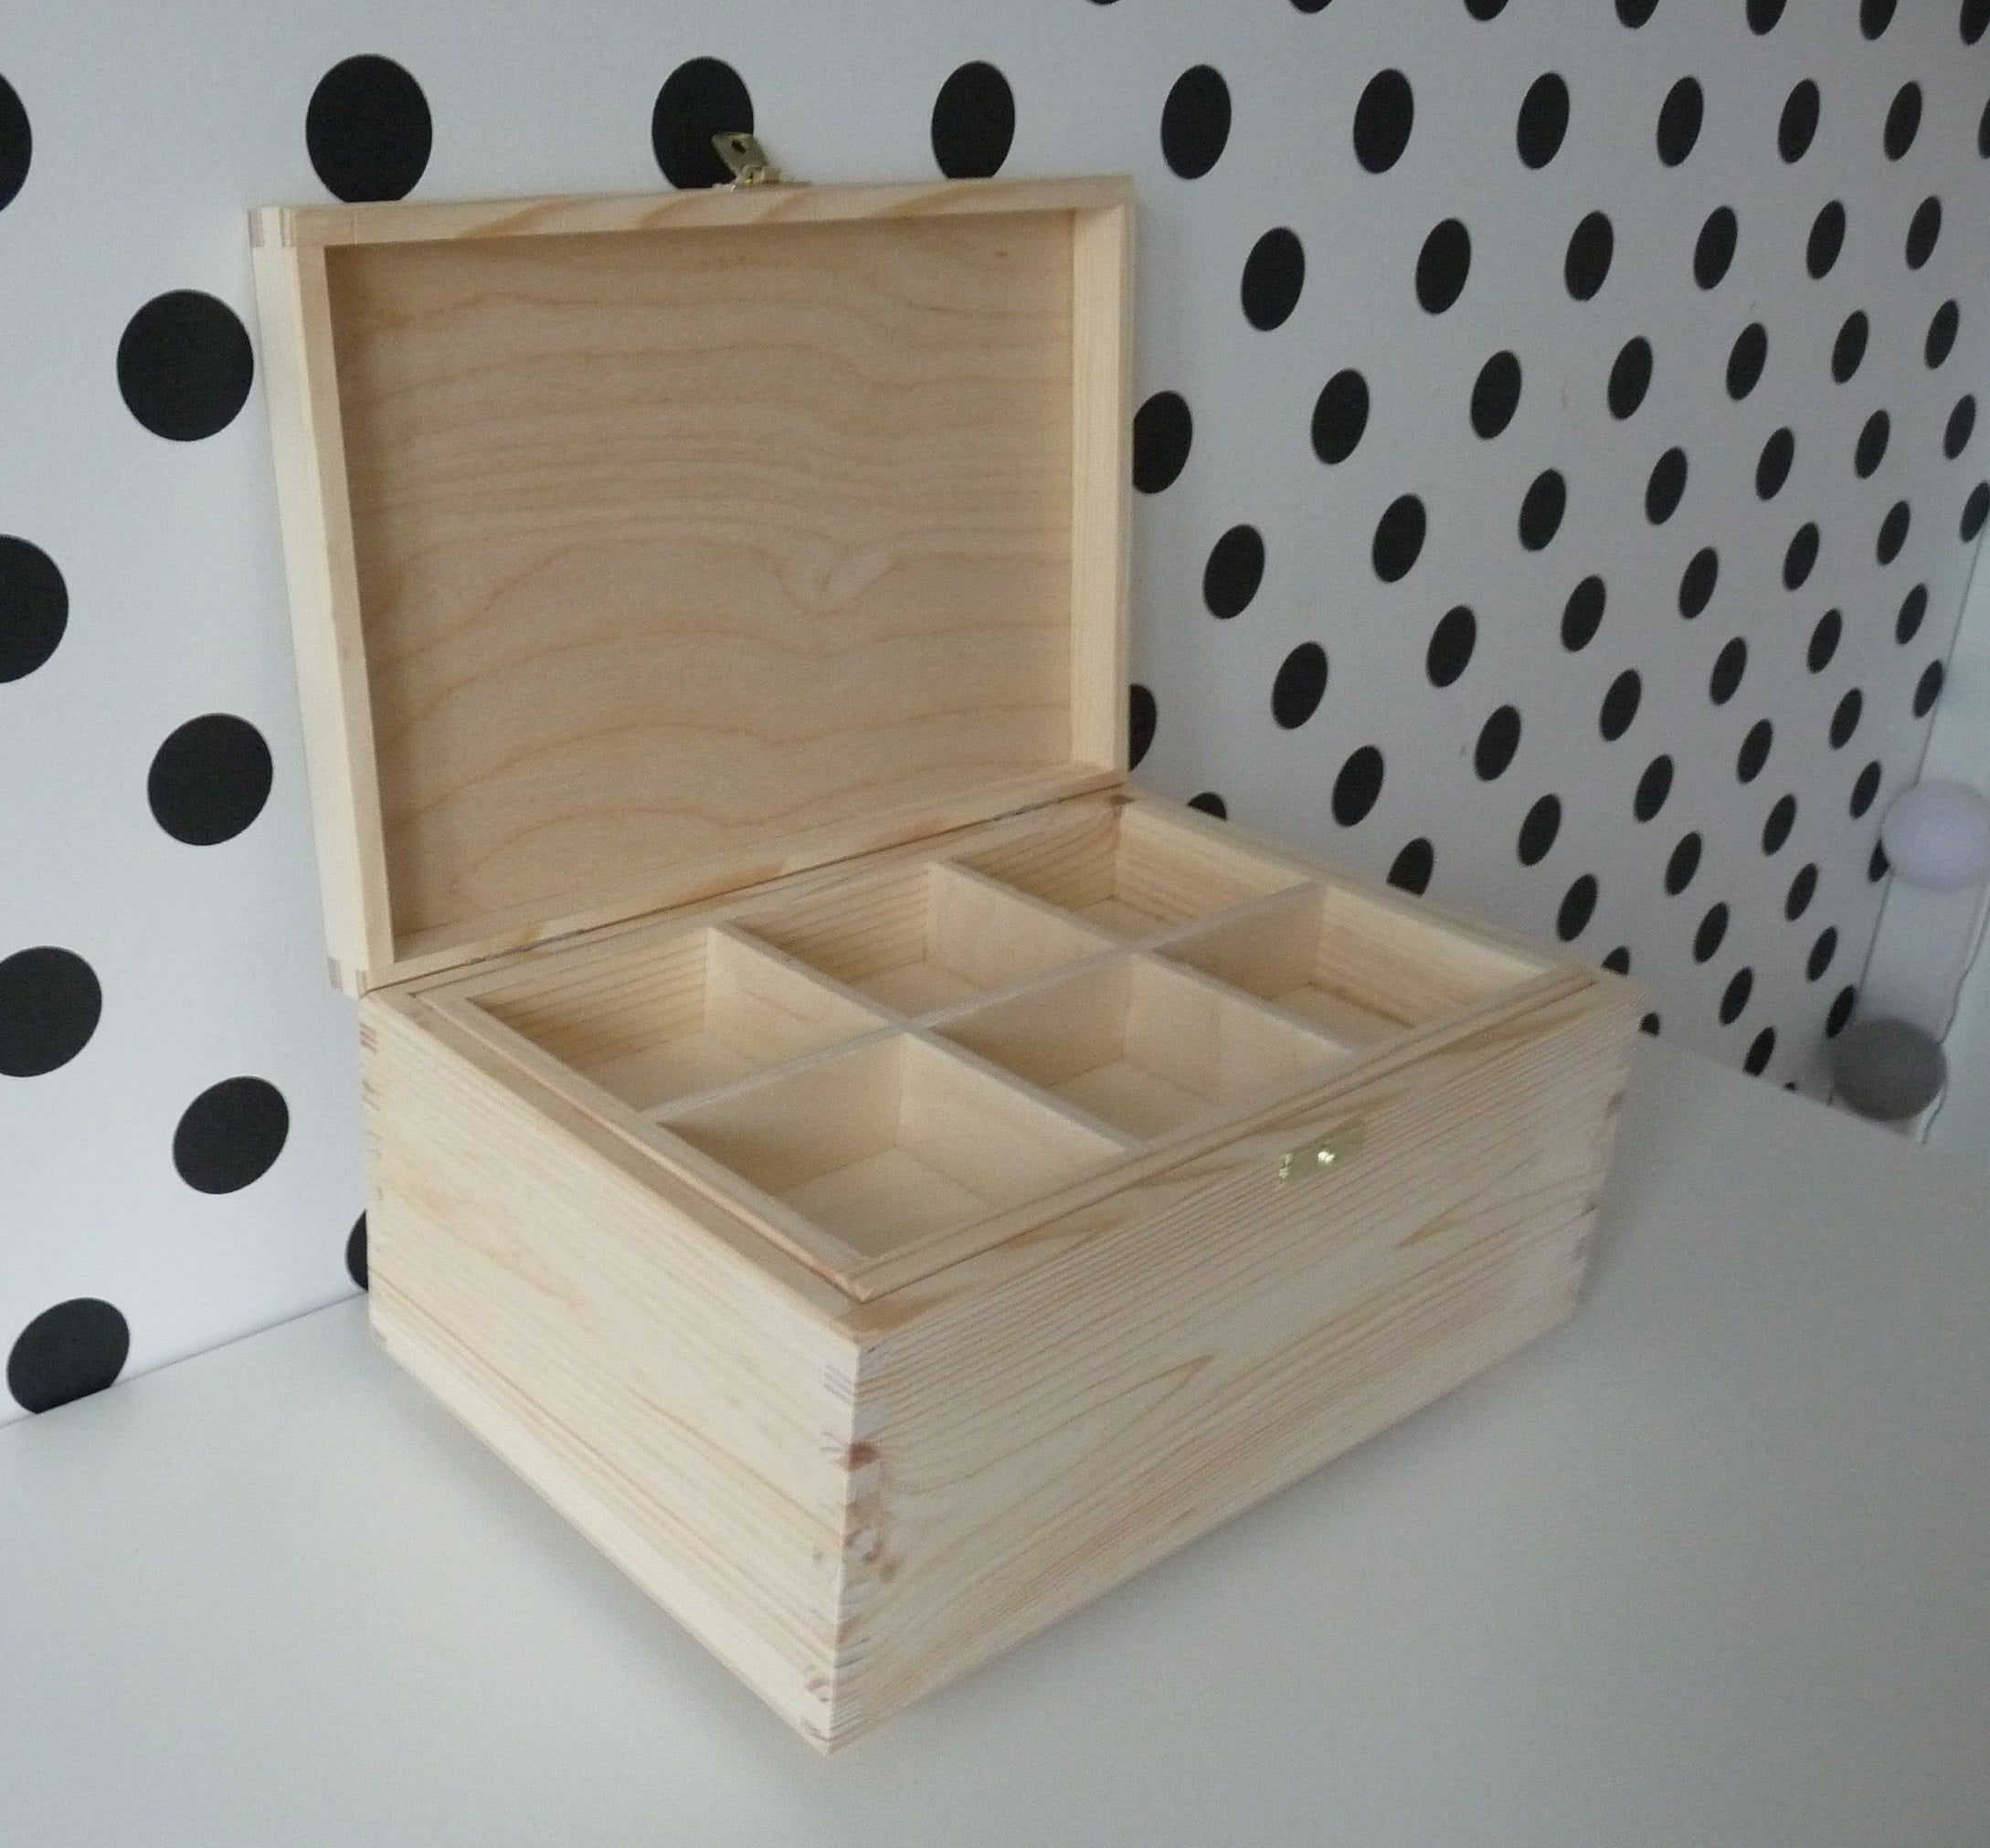 Wooden Treasure Chest Box With Two Trays Large Storage Box Unfinished Unpainted Plain Raw Wood Chest Box Craft Box In 2020 Wooden Organizer Wooden Boxes Storage Boxes